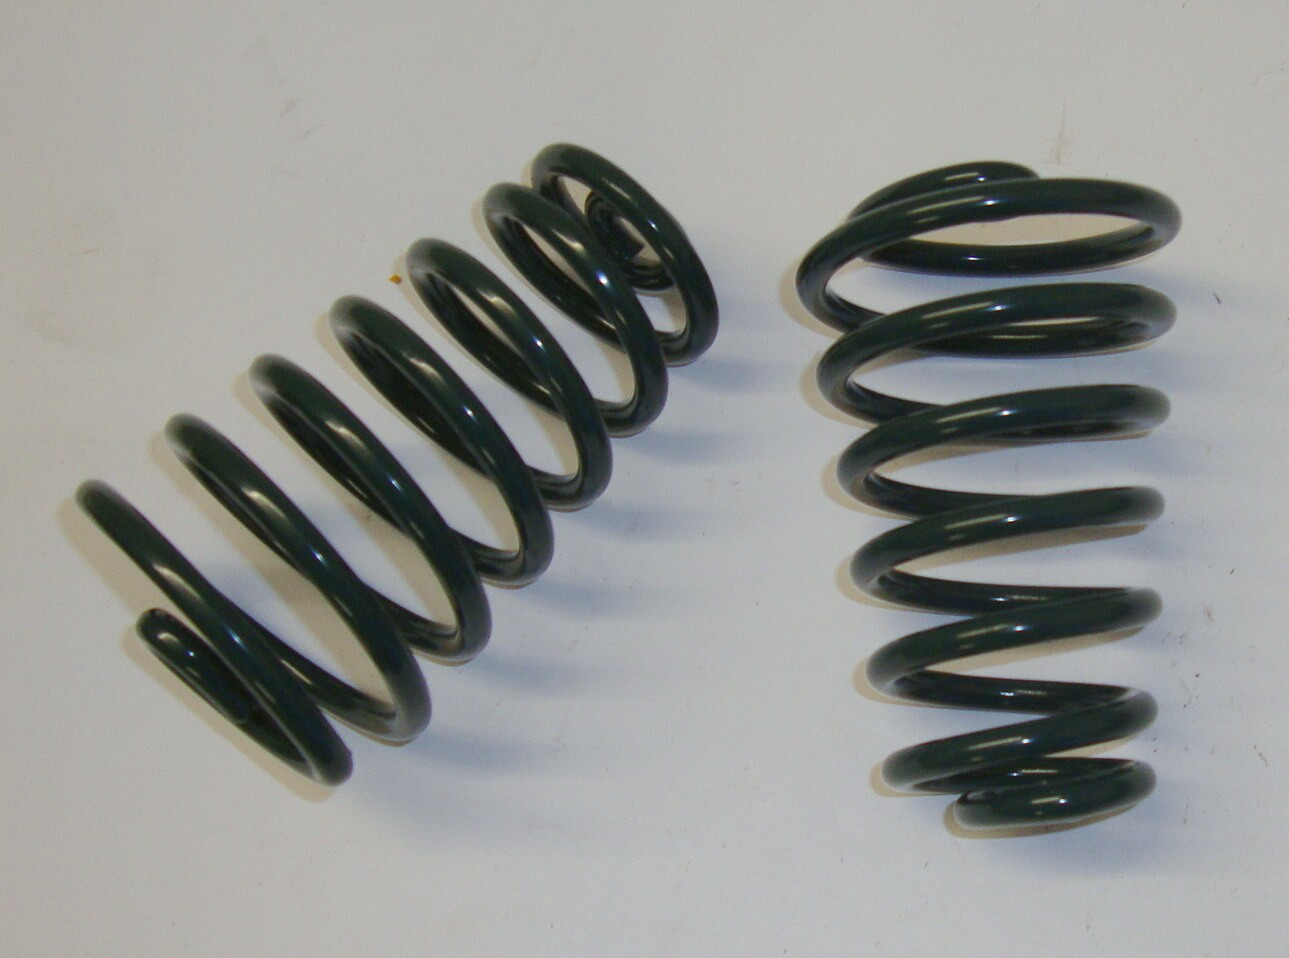 Springs kit, single saddle, dark green, Vespa 125 U VU1T - VN1T / Ape A1T > A15T